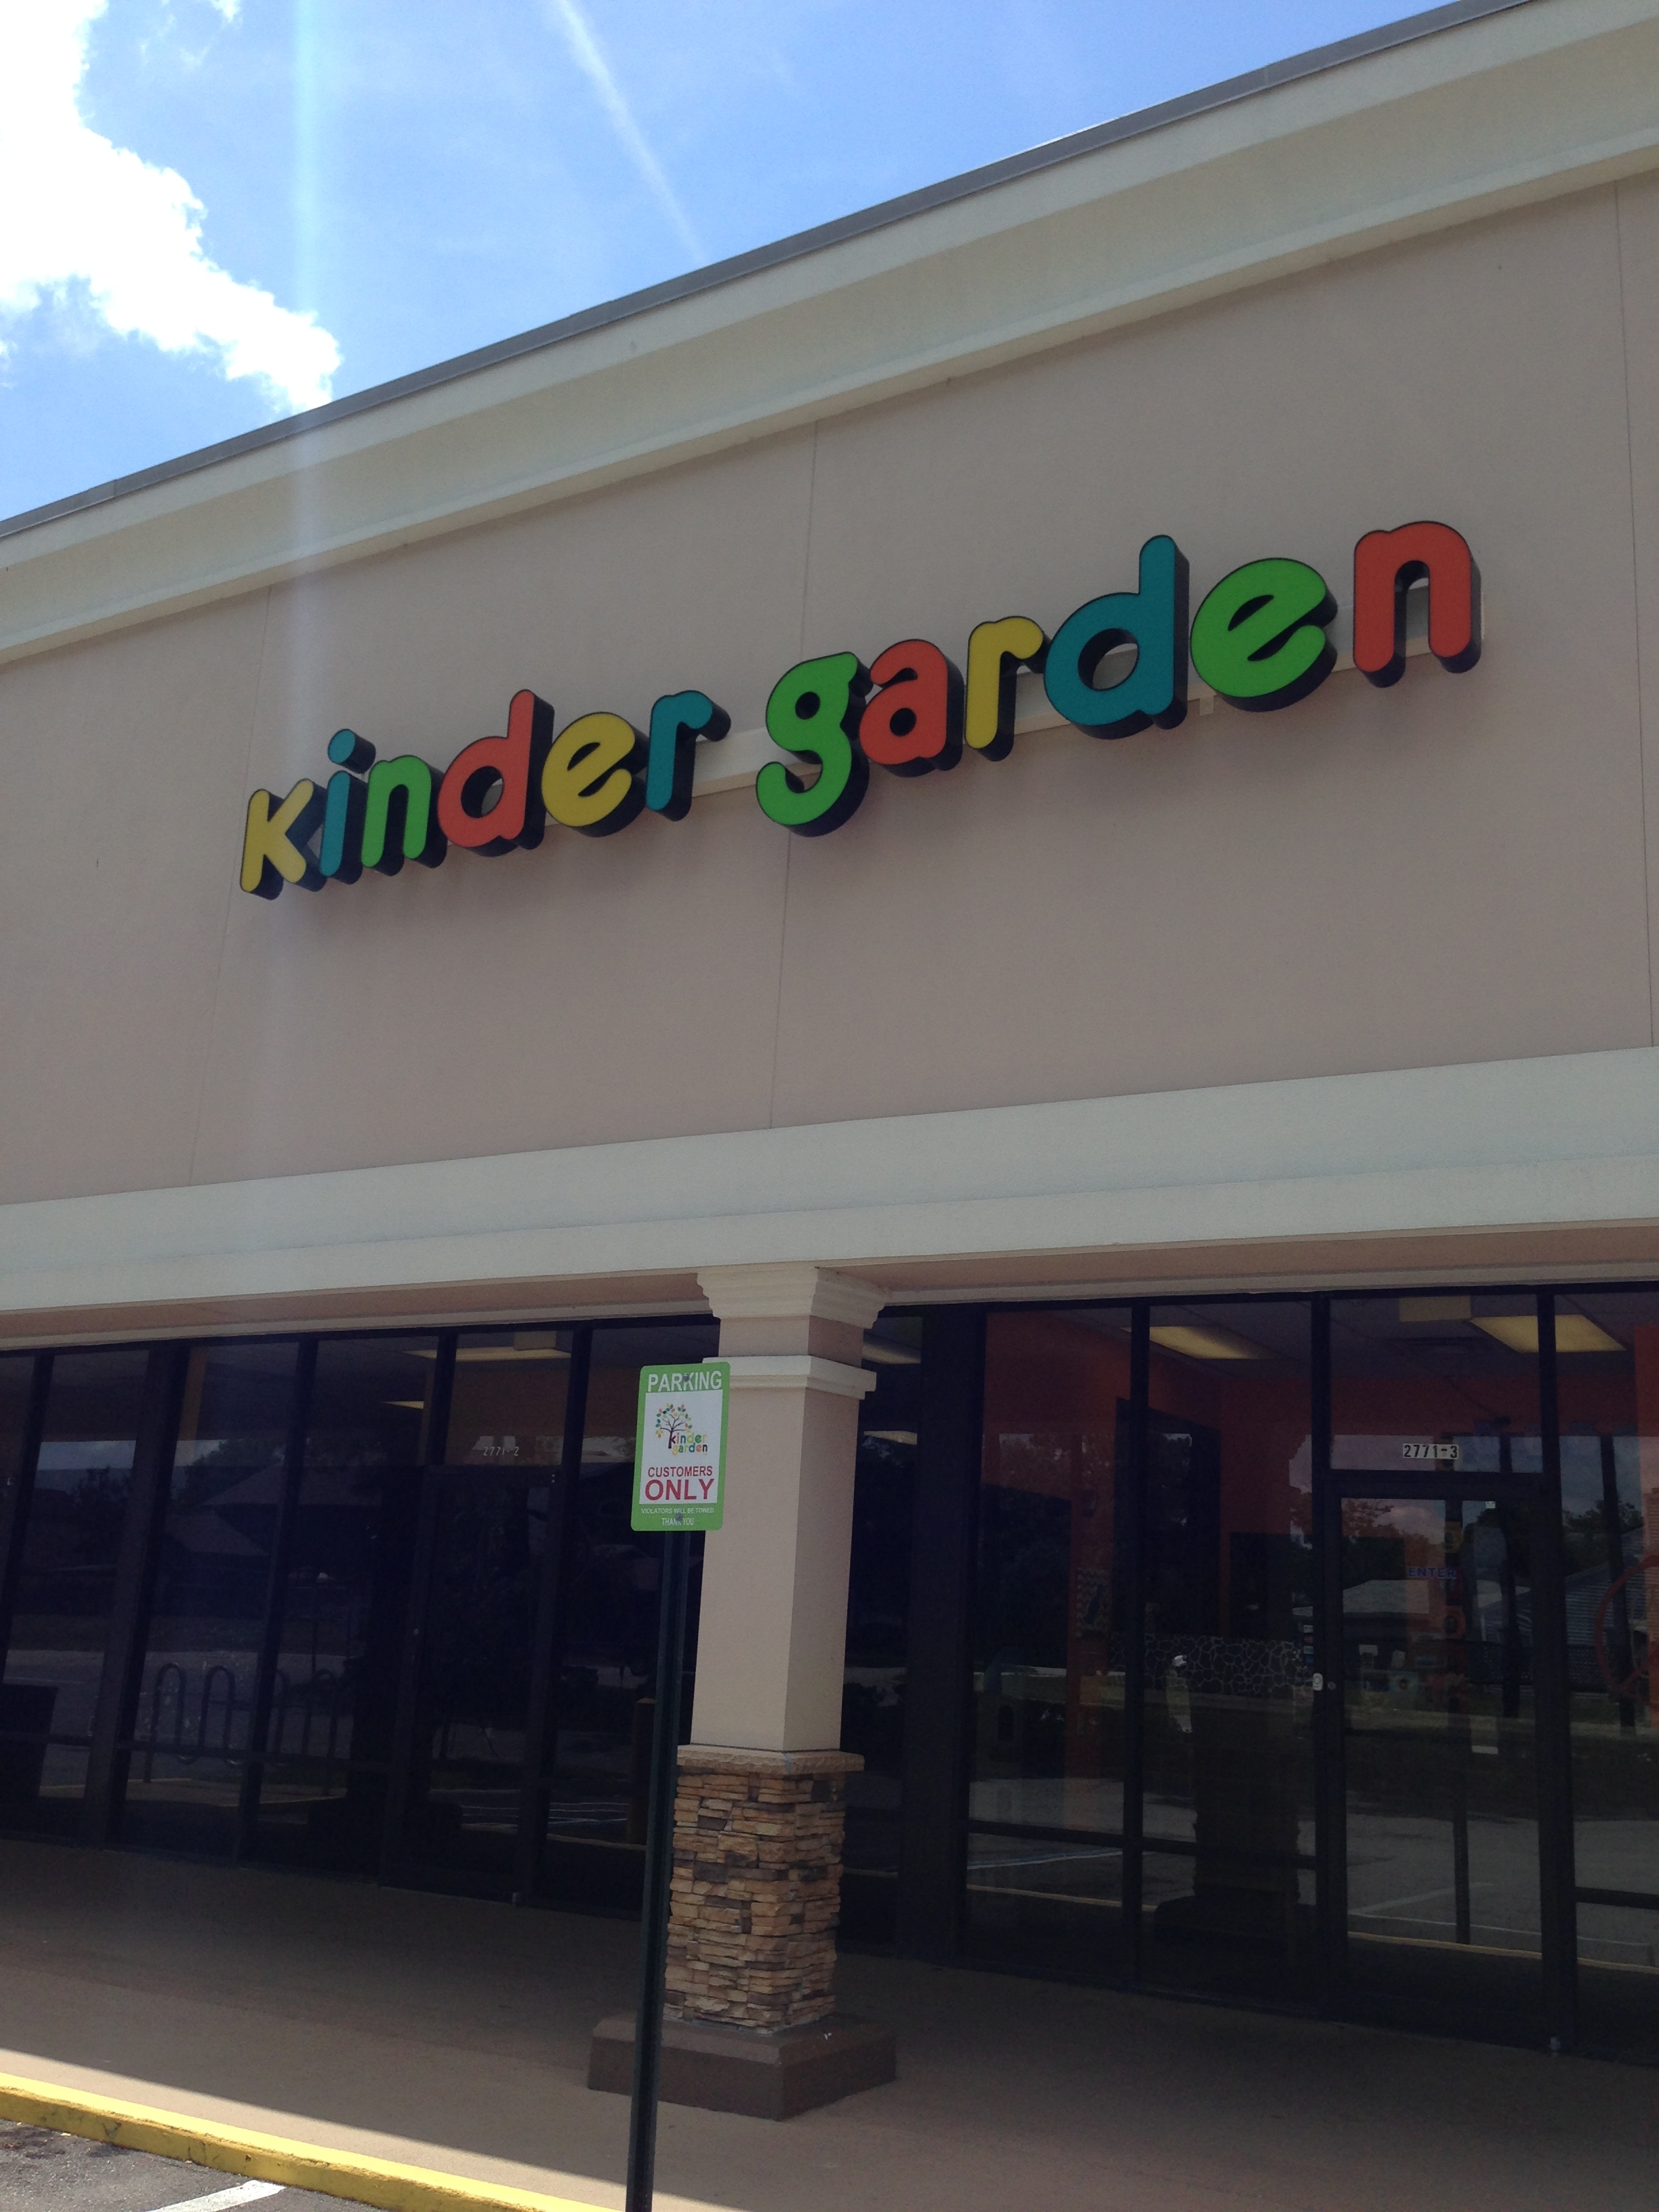 Kinder garden daycare and preschool day care center